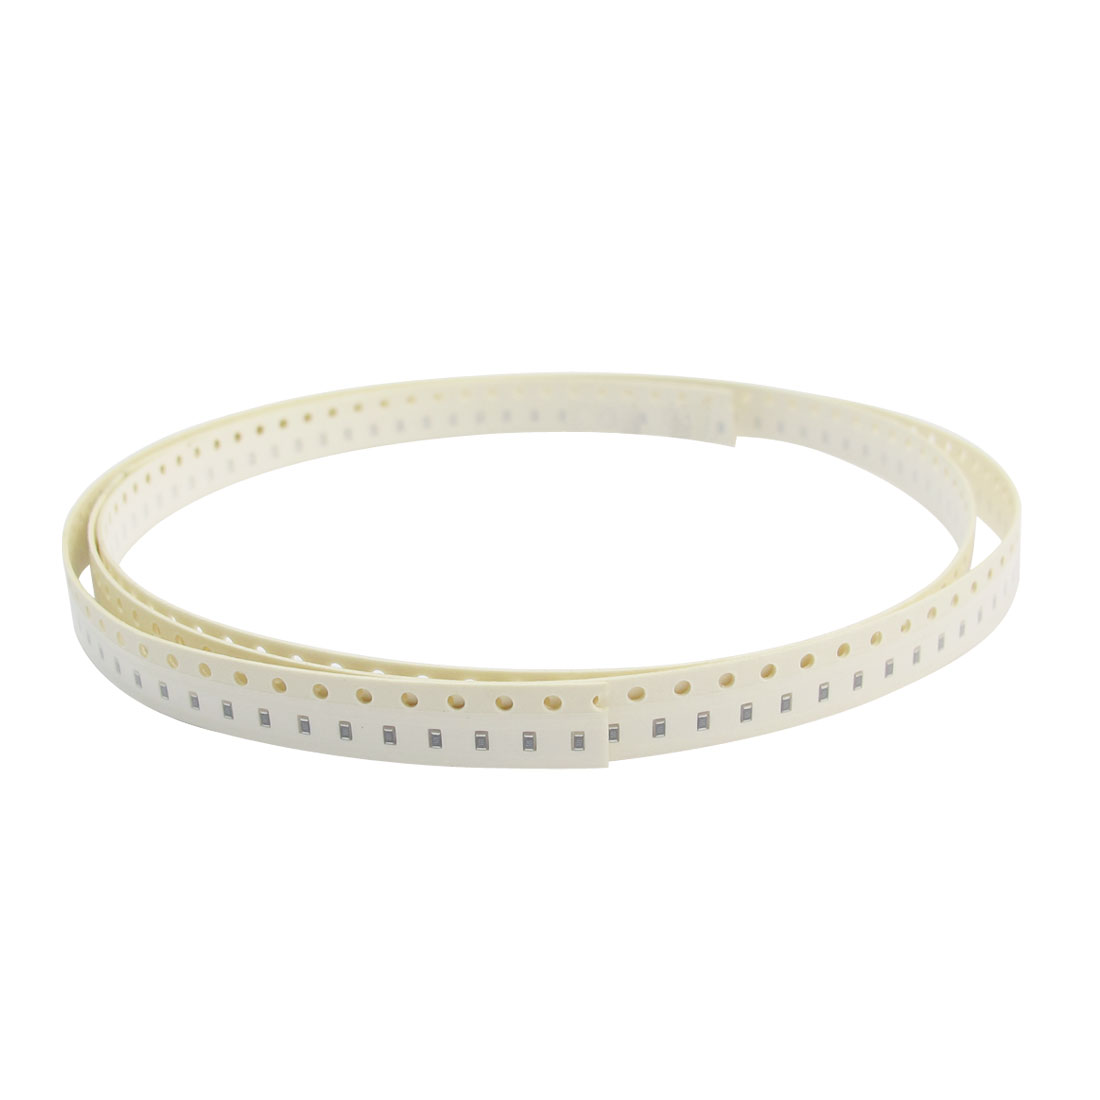 200 Pcs 0603 1608 62K Ohm Resistance 1/16W Watt 5% Tolerance Surface Mount Thin Film SMT SMD Chip Fixed Resistors Strip